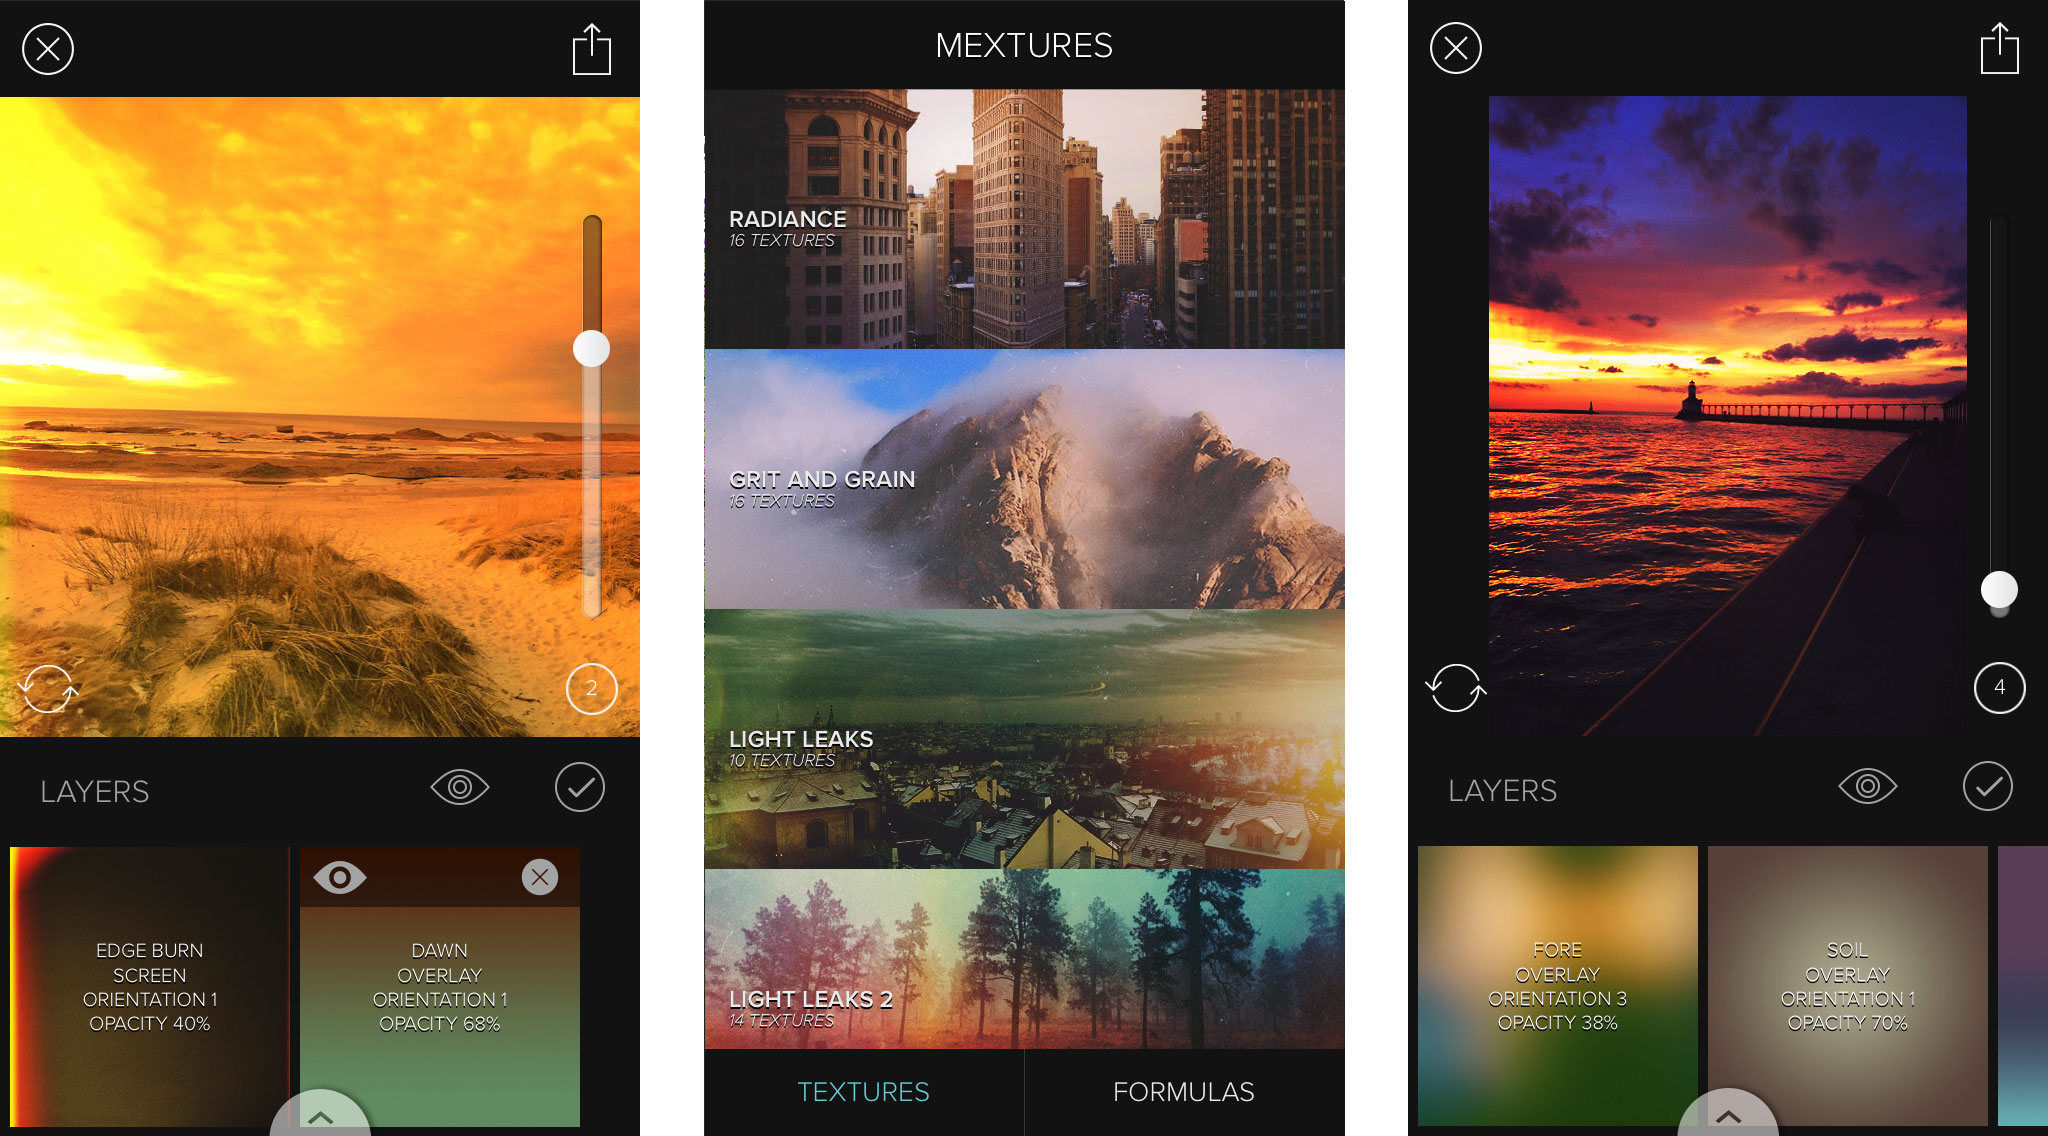 Best photo filter apps for iPhone: Snapseed, Litely ...